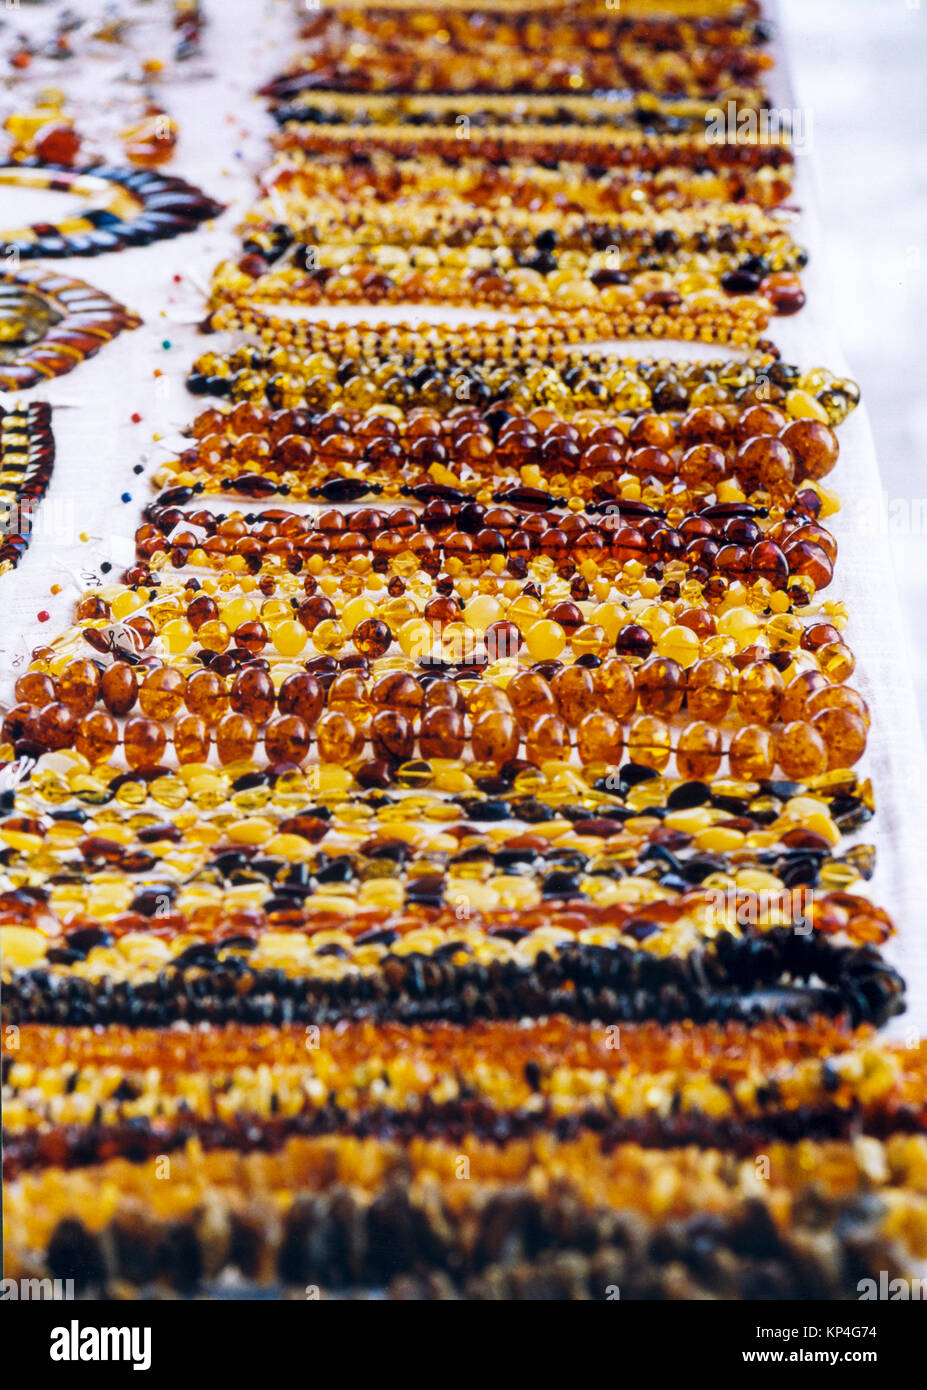 AMBER Necklace for sale at a street shop in Riga Latvia 2010 - Stock Image